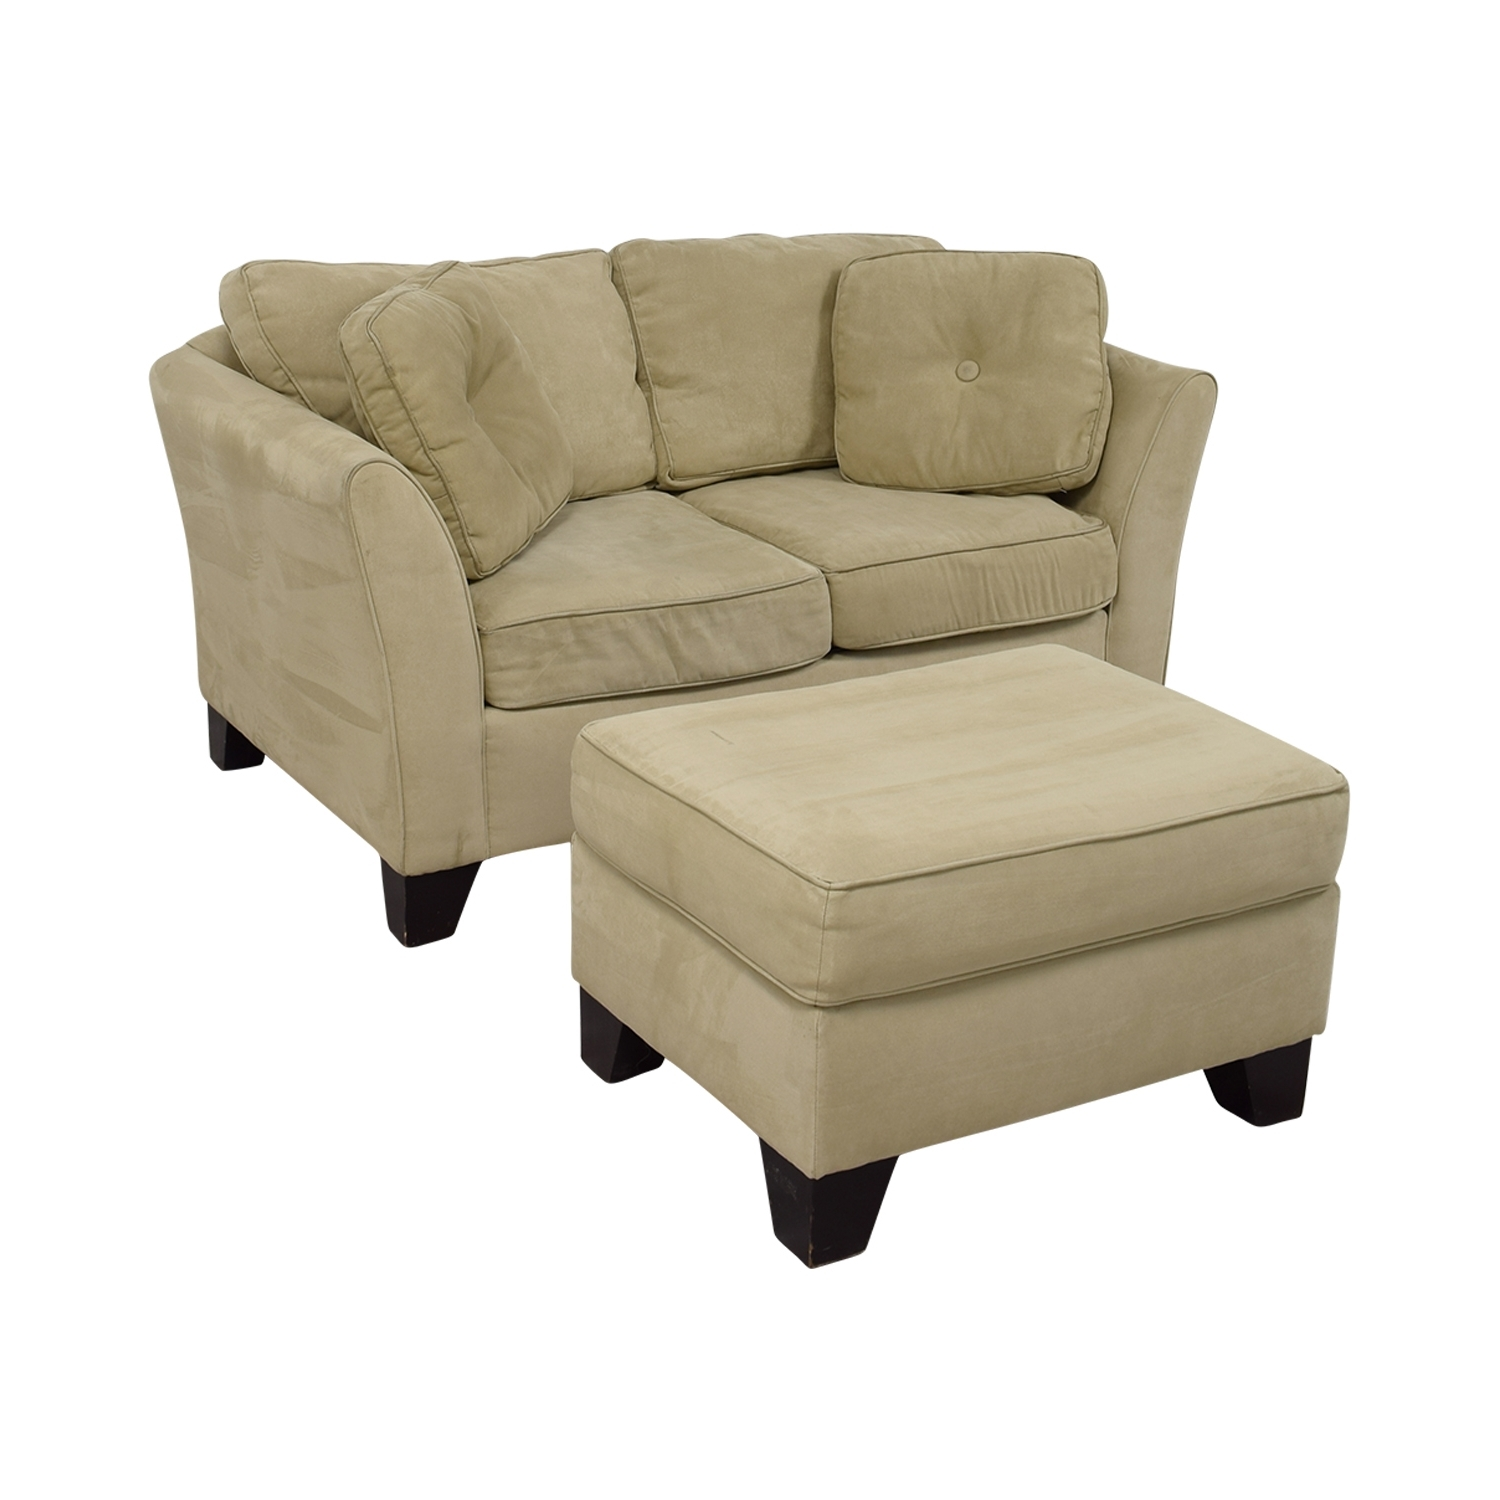 [%86% Off – Macy's Macy's Tan Loveseat With Ottoman / Sofas Regarding Most Current Loveseats With Ottoman|Loveseats With Ottoman With Popular 86% Off – Macy's Macy's Tan Loveseat With Ottoman / Sofas|Most Popular Loveseats With Ottoman With 86% Off – Macy's Macy's Tan Loveseat With Ottoman / Sofas|Well Known 86% Off – Macy's Macy's Tan Loveseat With Ottoman / Sofas With Loveseats With Ottoman%] (View 11 of 20)